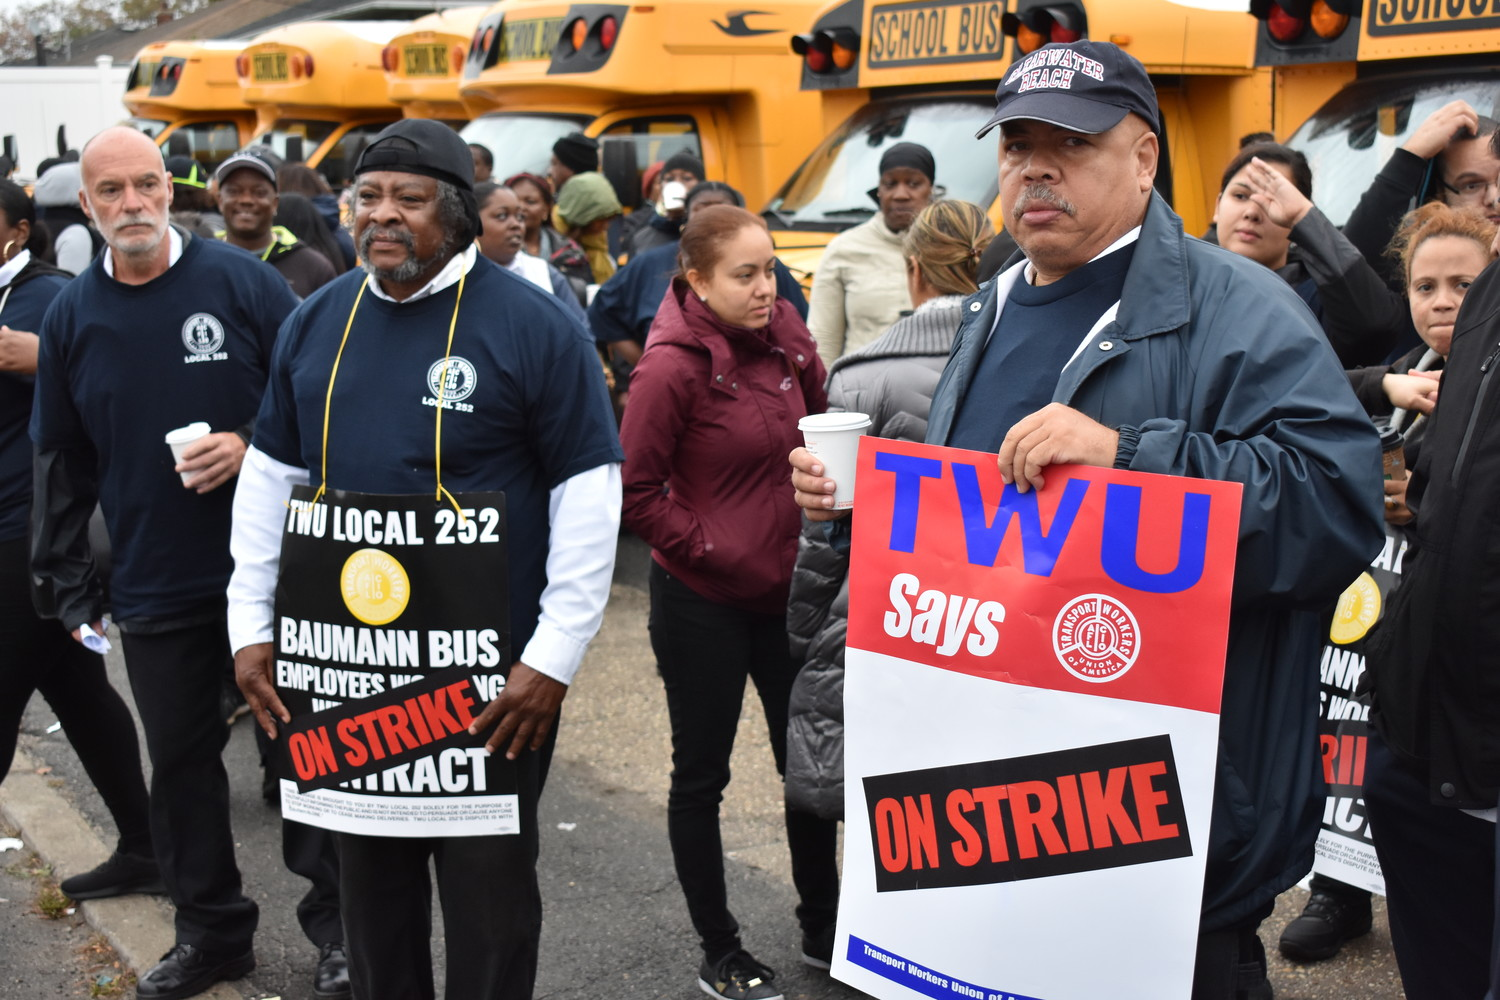 Walter Richardson, with sign on left, and Leonardo Bautista were among the members of Transportation Workers Union Local 252 who went on strike against the Oceanside-based Baumann Bus Company on Monday.